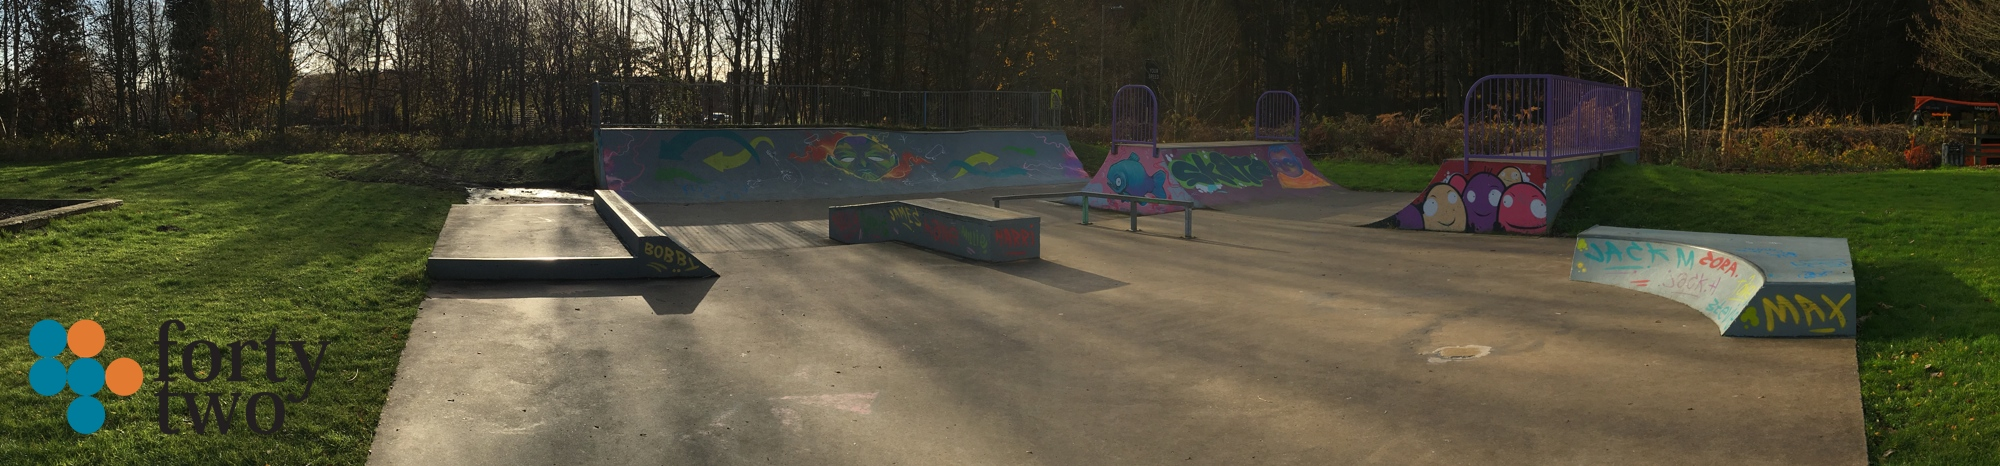 Newstead Village Skatepark Nottingham Skateboarding